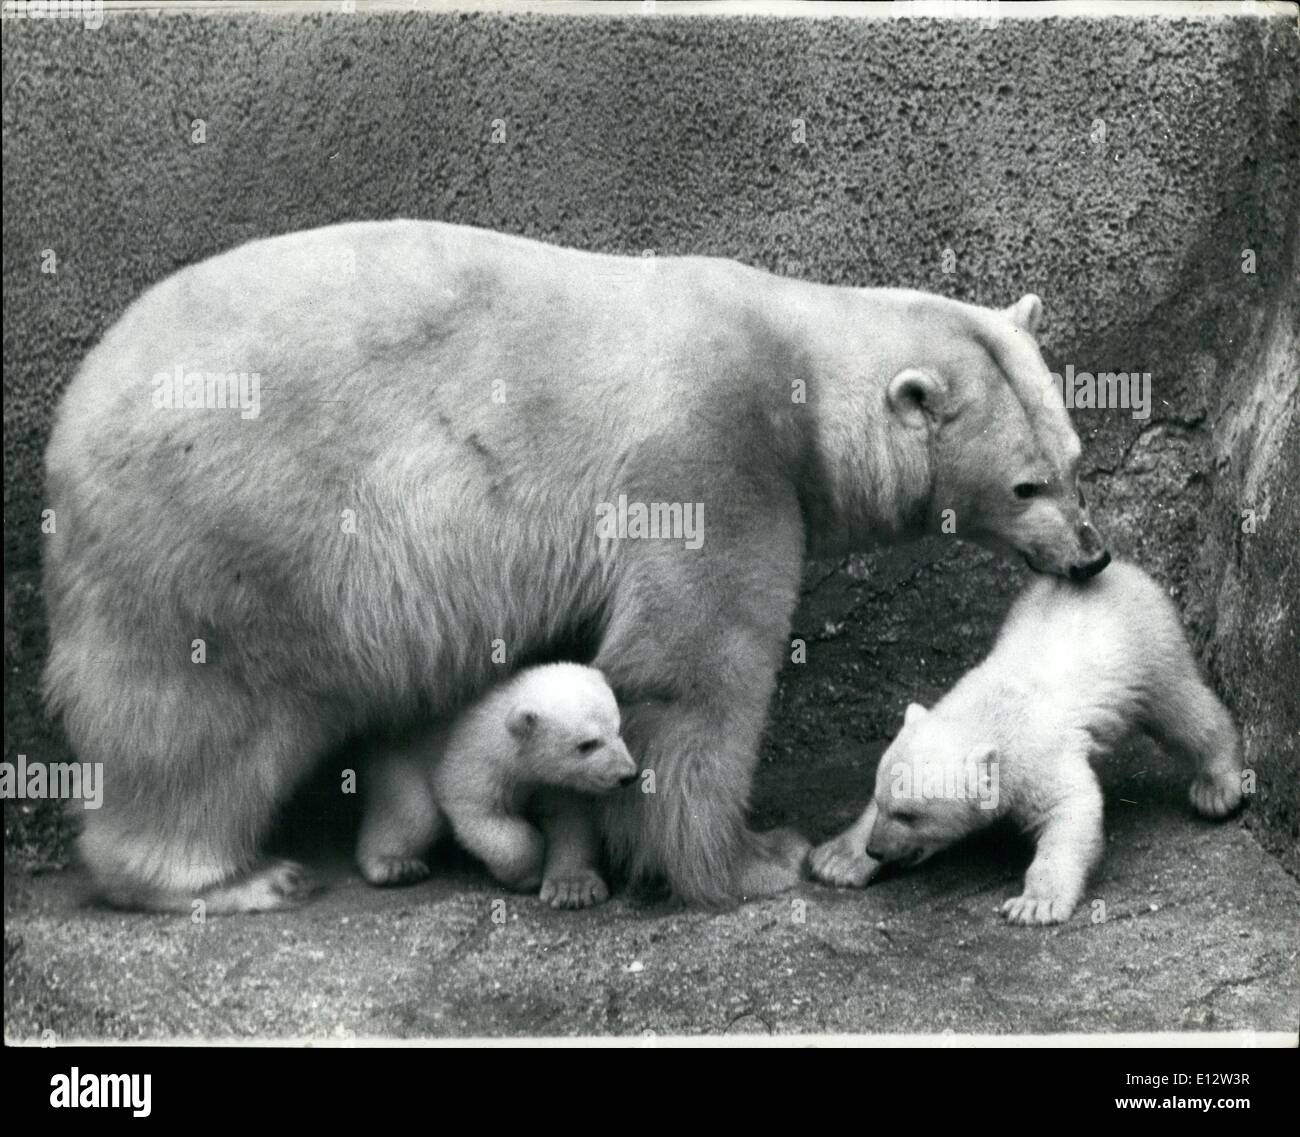 Feb. 25, 2012 - Undignified But Effective: Making their first public appearance at Whipsnade Zoo today were the twin female polar bear cubs Tiyak (she bear) and Tineak (little one who walks to the sea) who were born to Nanook and Maya, 12 weeks ago. Photo shows One of the cubs got into difficulties at the bottom of a large step and couldn't climb up. After a little thought, mother Maya reached down and picked the cub up the the ''seat of her pants''. The other cub takes refuge under Maya in case she comes in for some of the same treatment. - Stock Image